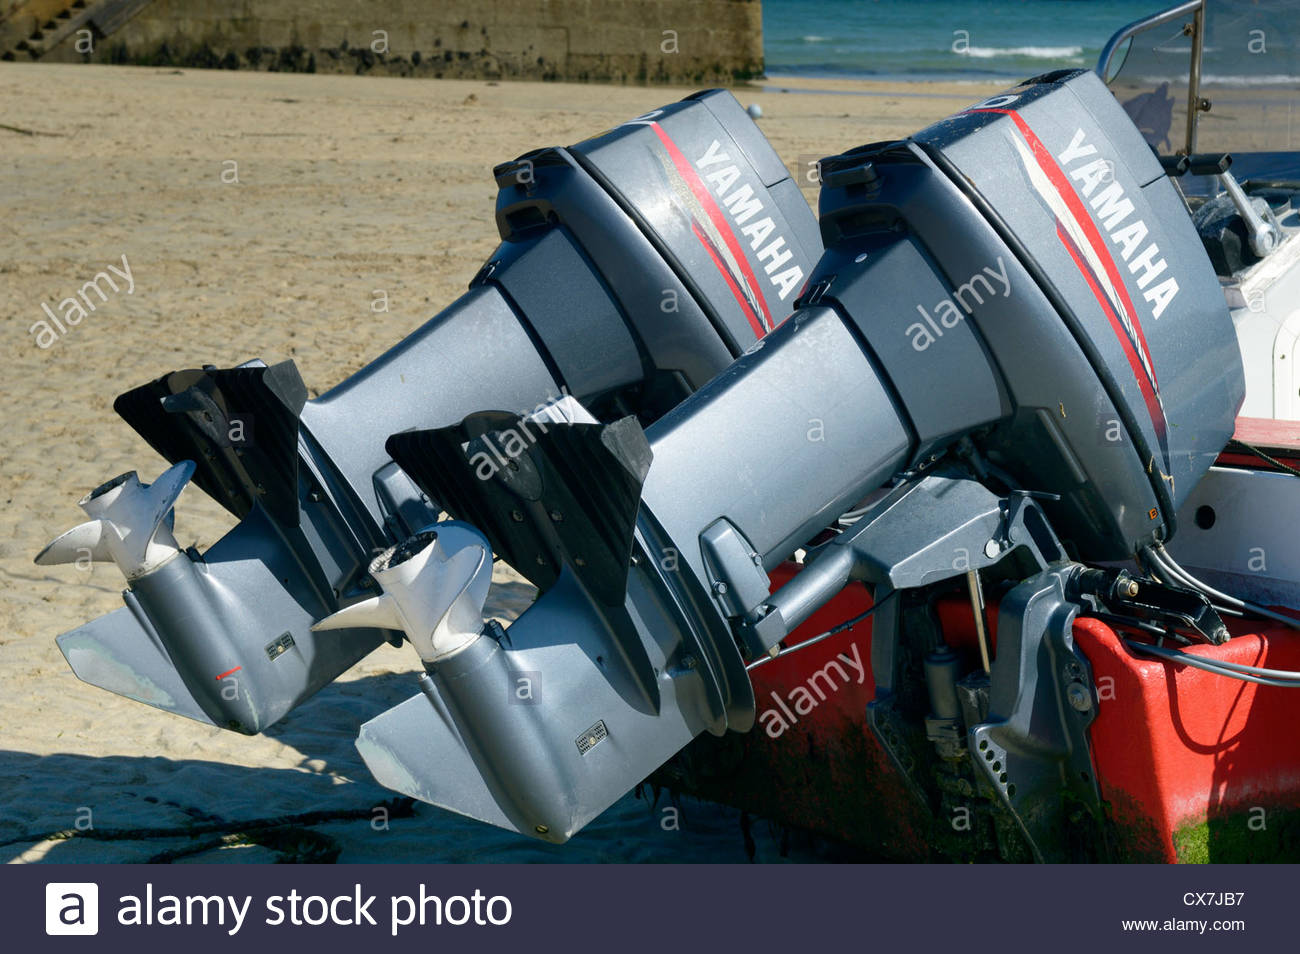 Yamaha boat motors on the beach in St Ives Harbour, Cornwall, England1 Stock Photo